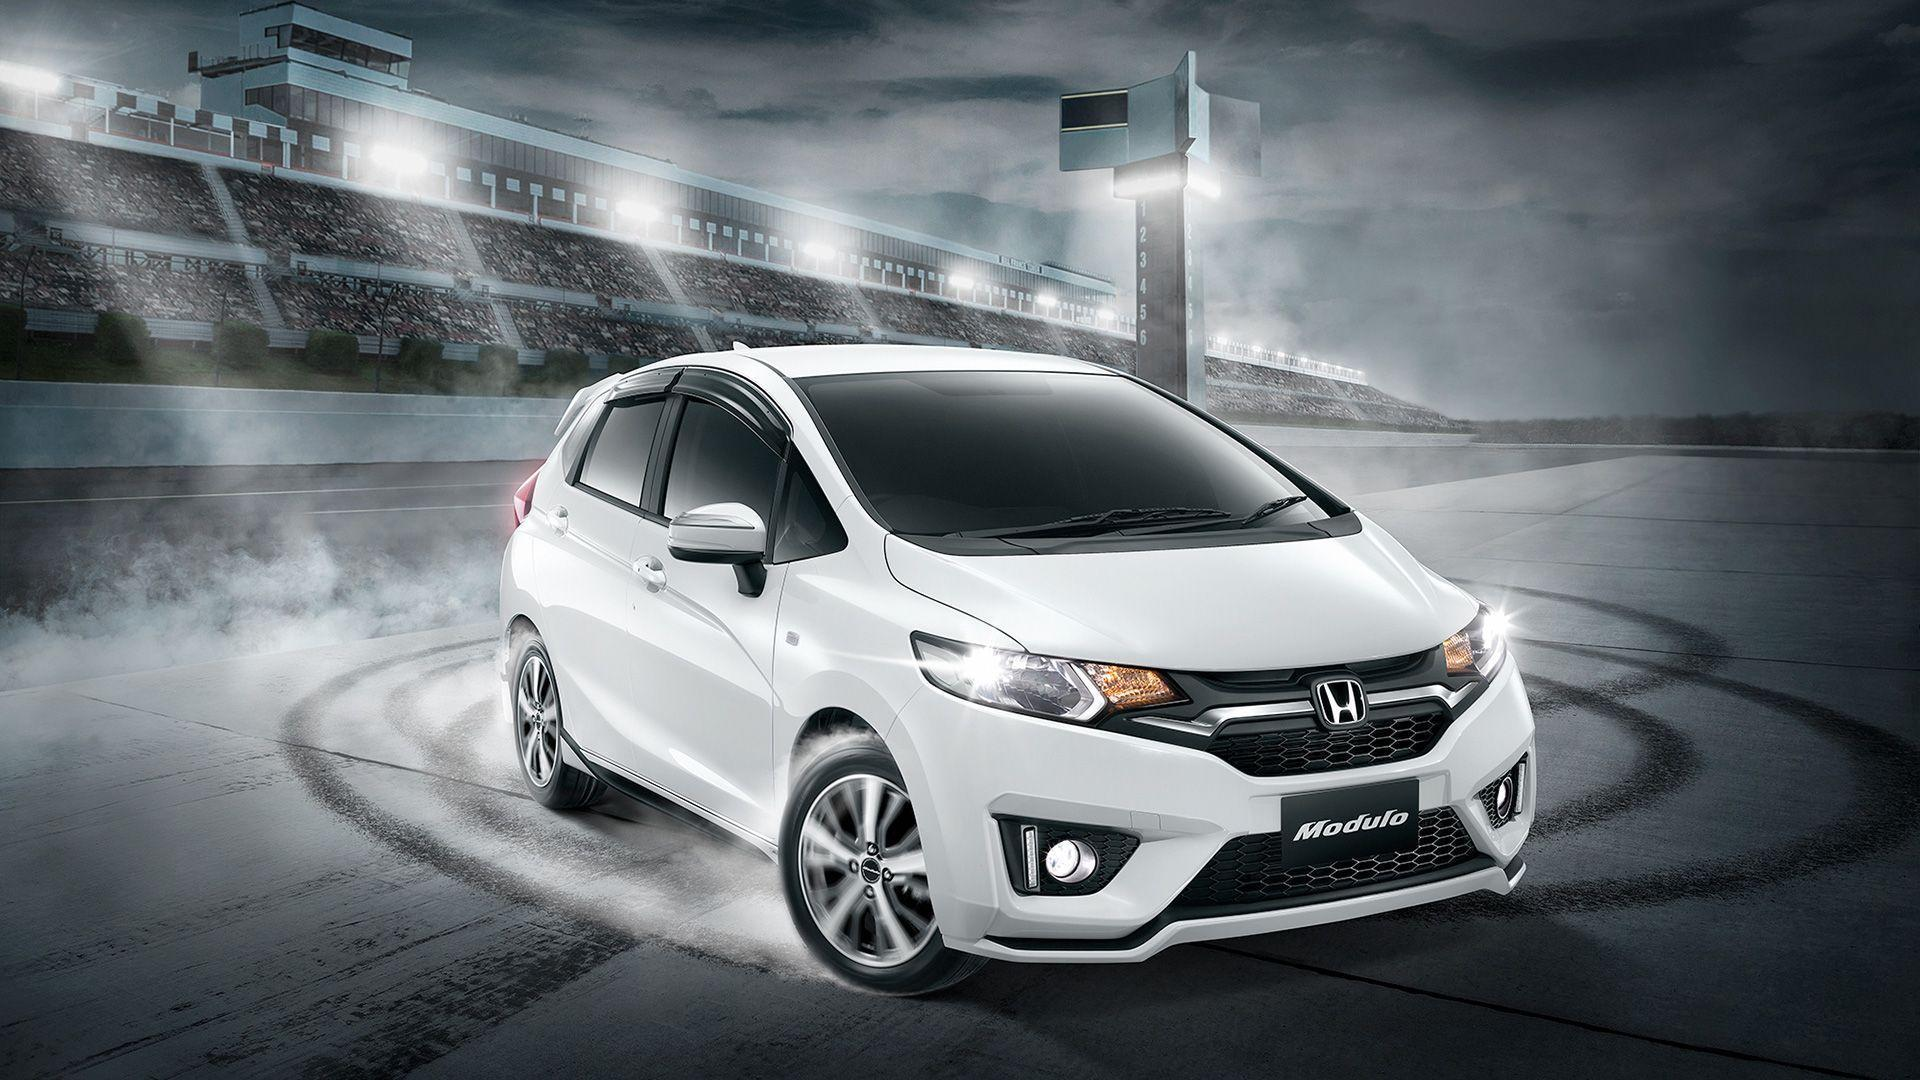 Honda Jazz RS images (2) - HD Wallpapers Buzz